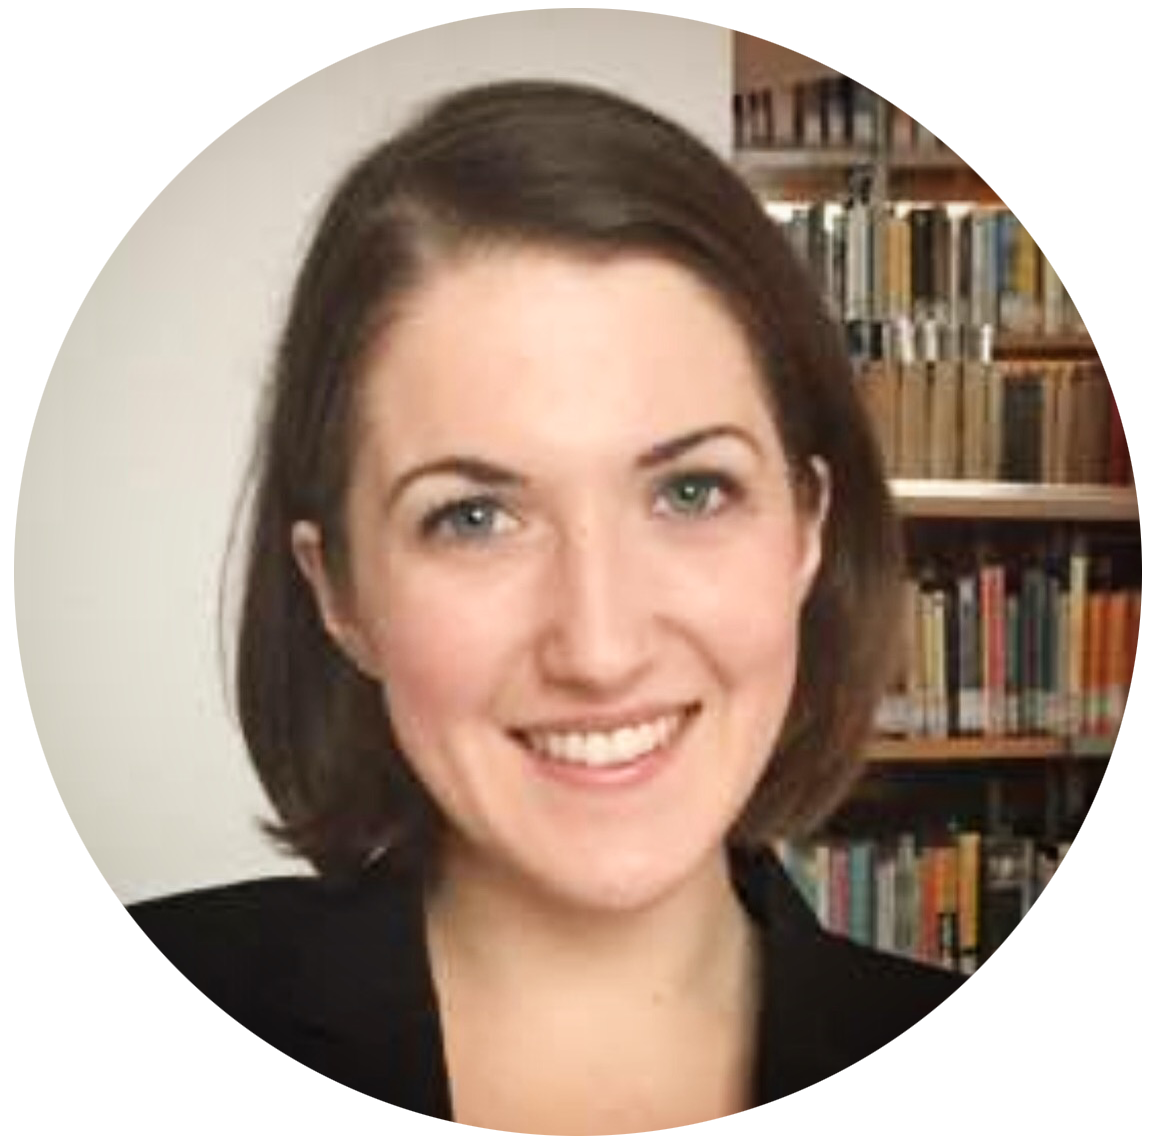 Penelope studied abroad at IES Abroad Vienna in 2014-15, and served as the IES Abroad Vienna Archivist & Student Assistant for two years.